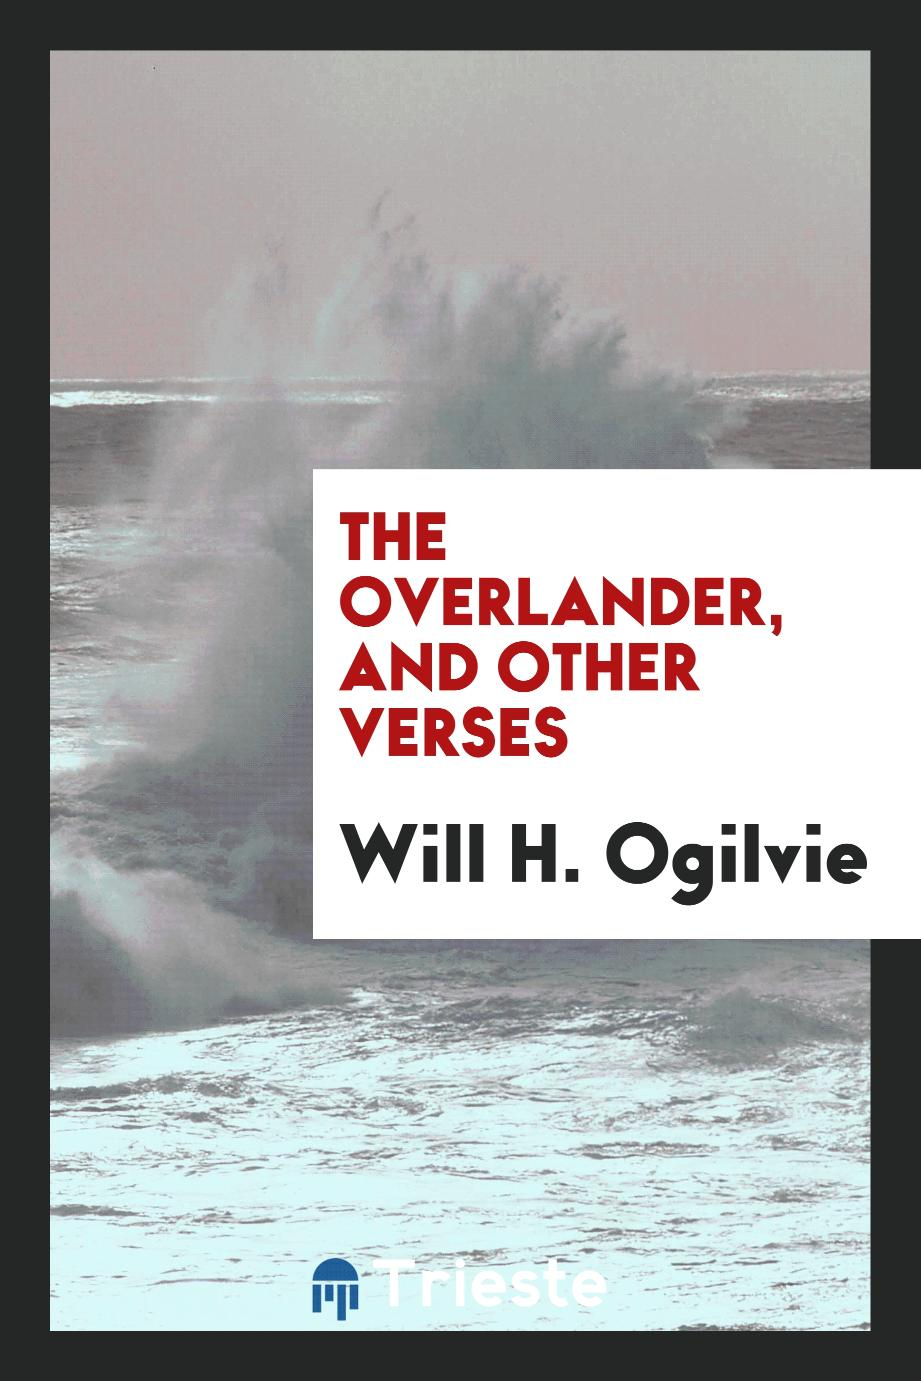 The overlander, and other verses